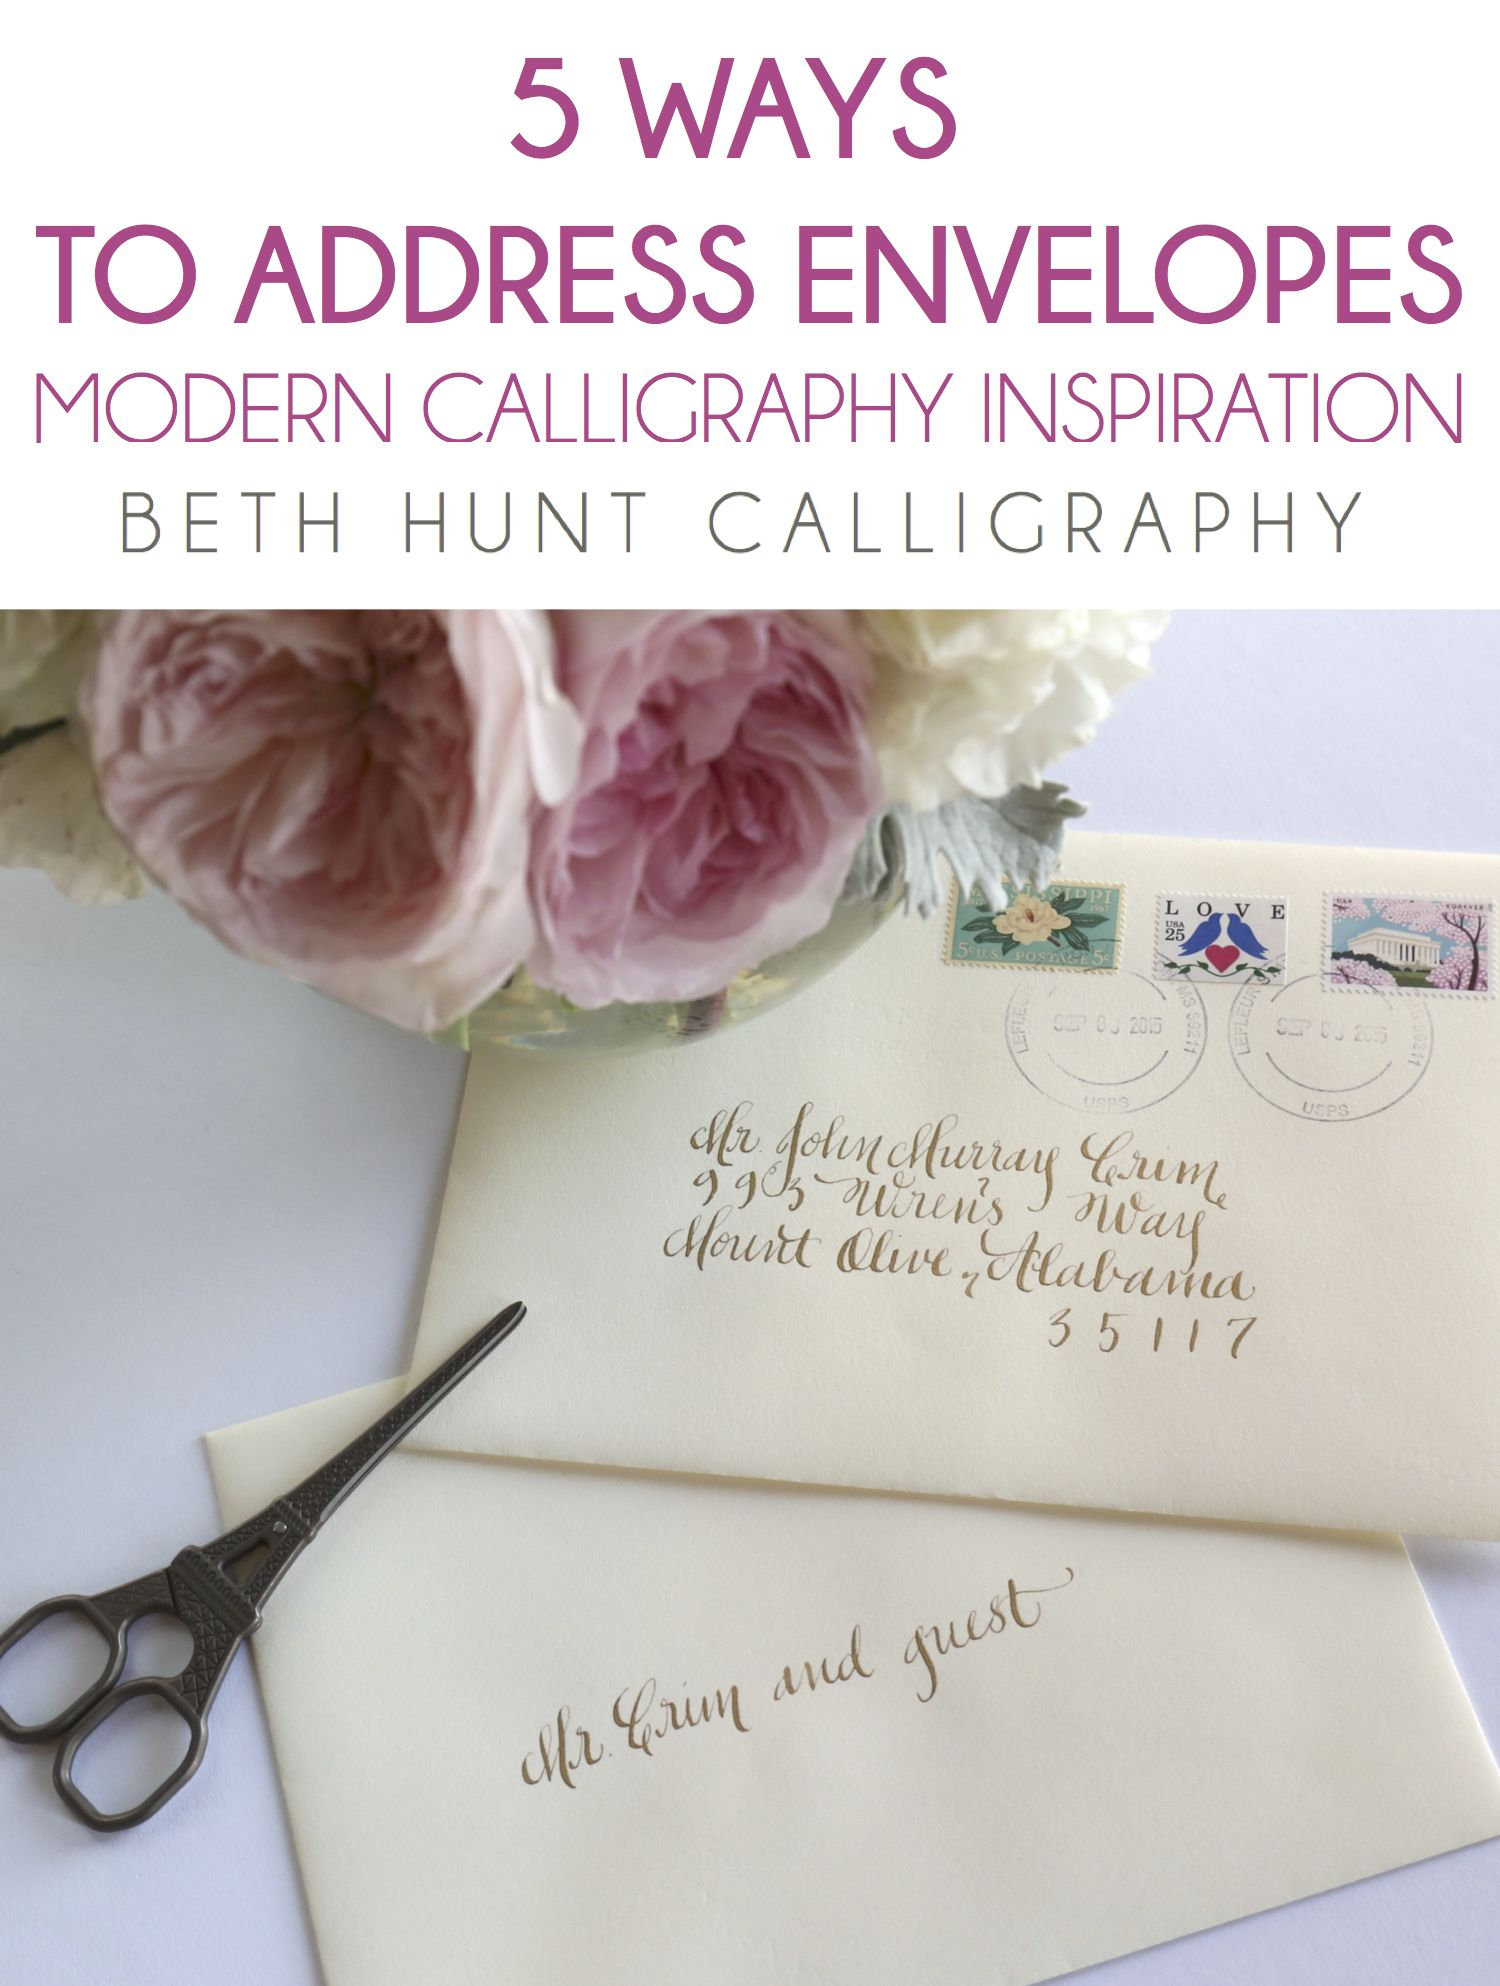 Modern Calligraphy Envelope Ideas From Beth Hunt Calligraphy